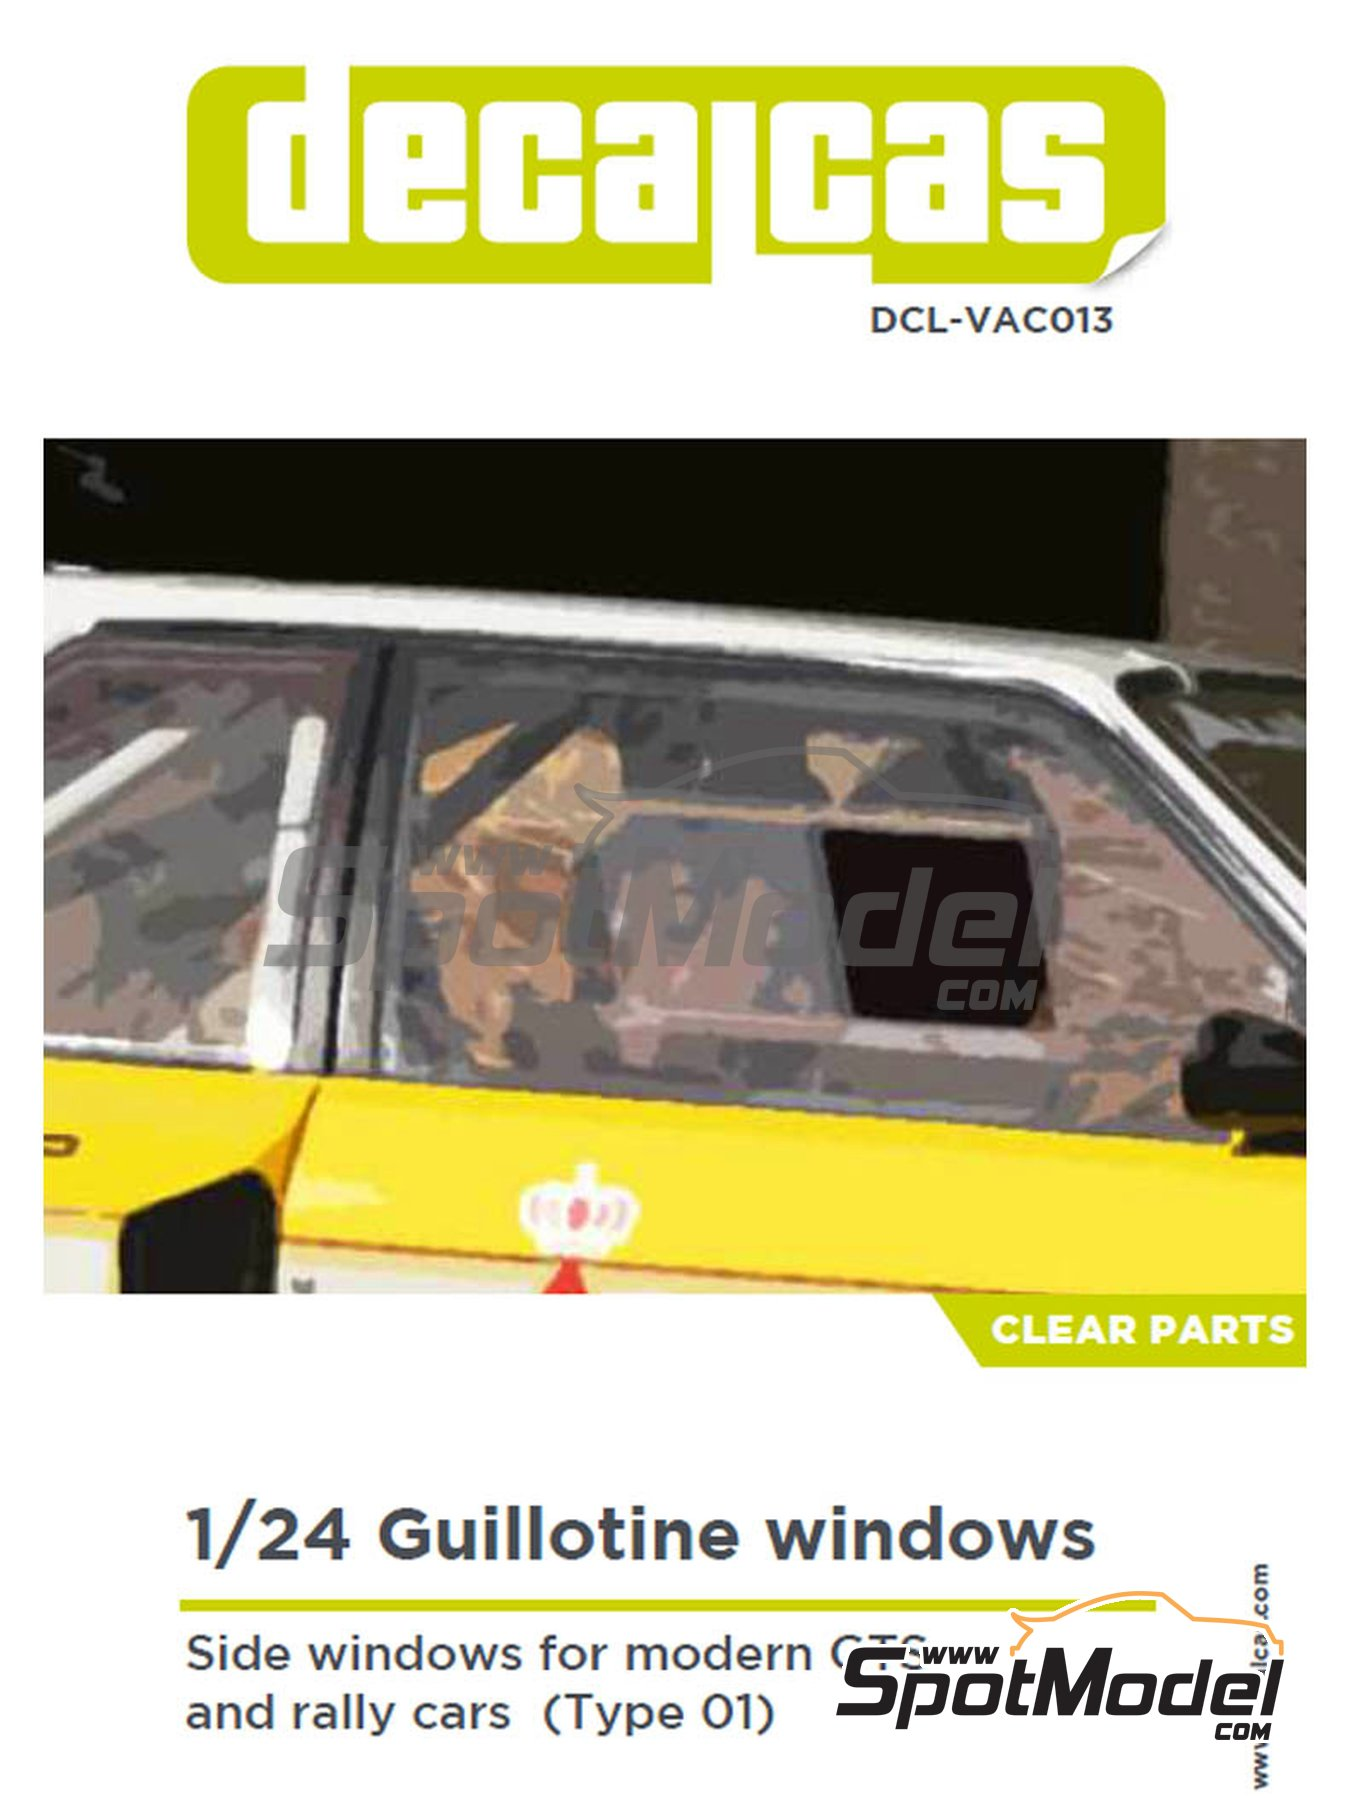 Guillotine windows for modern GTS and rally cars - Type 01   Clear parts in 1/24 scale manufactured by Decalcas (ref.DCL-VAC013) image